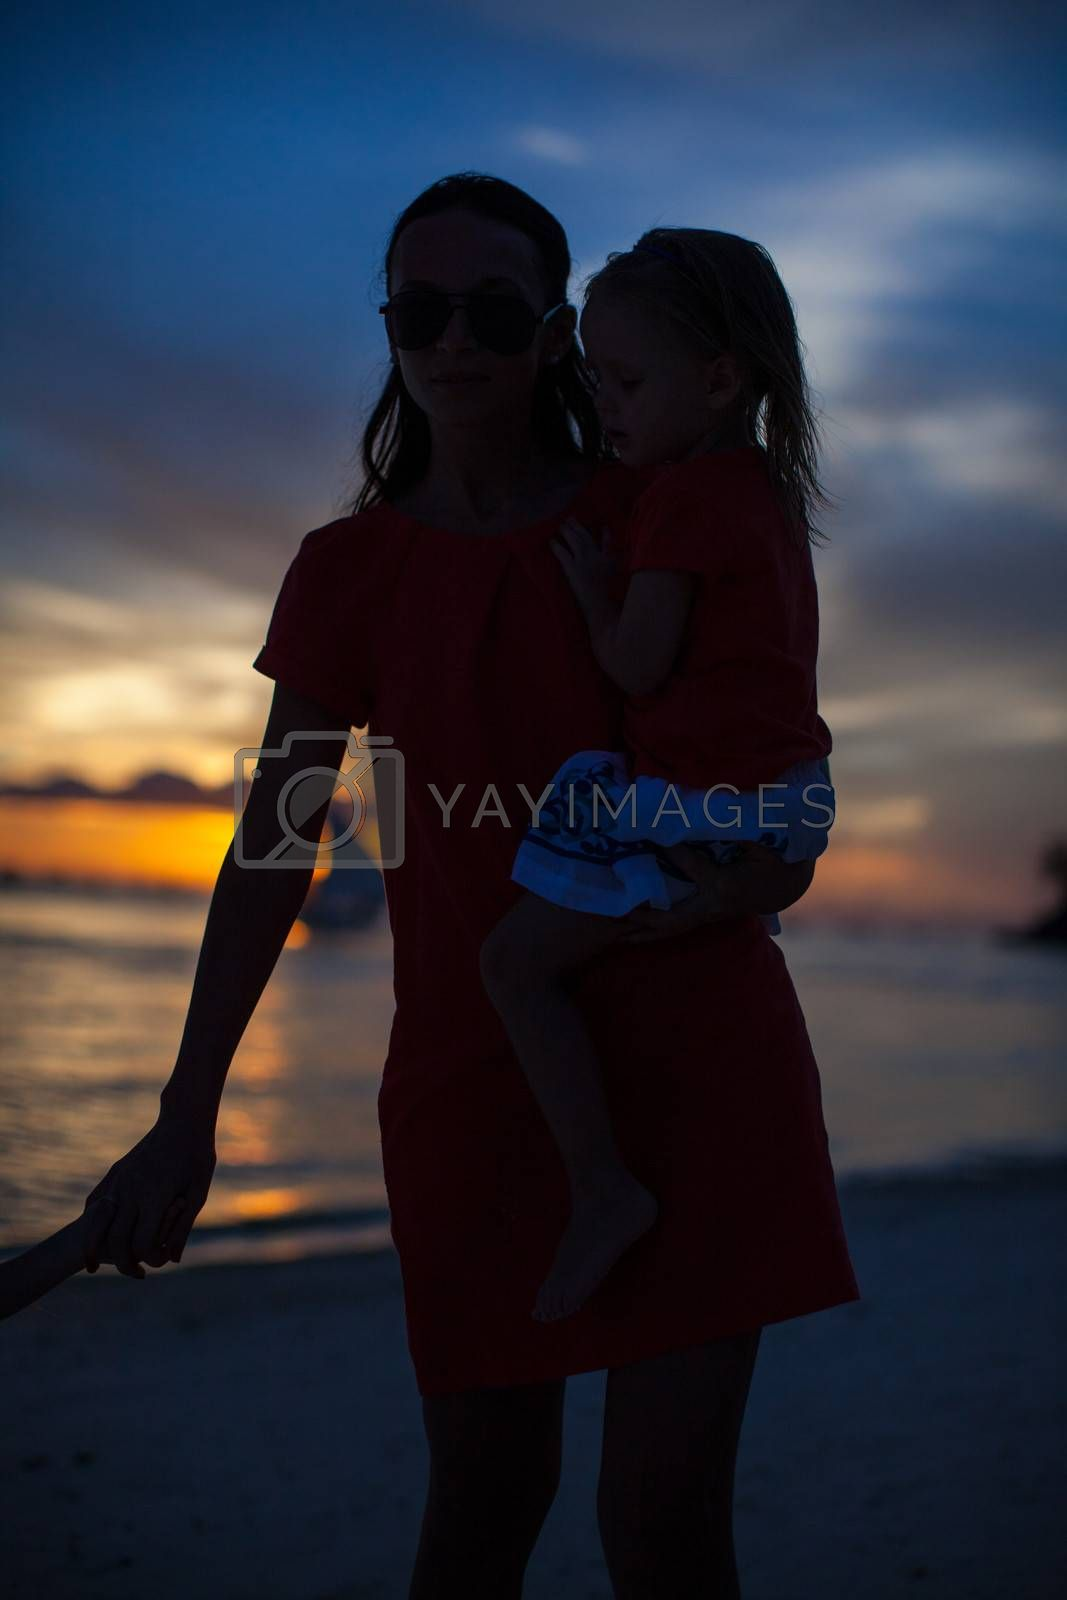 Mom and daughter silhouette in the sunset at the beach on Boracay